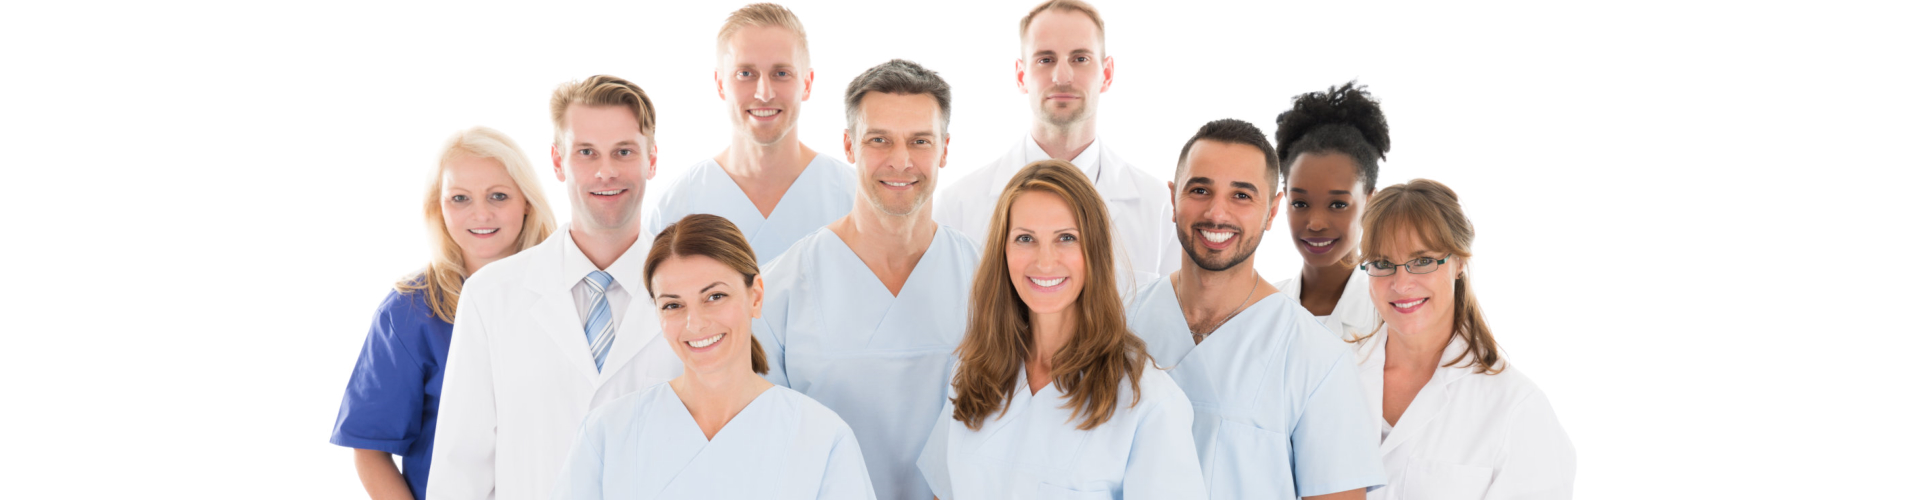 group of healthcare professionals